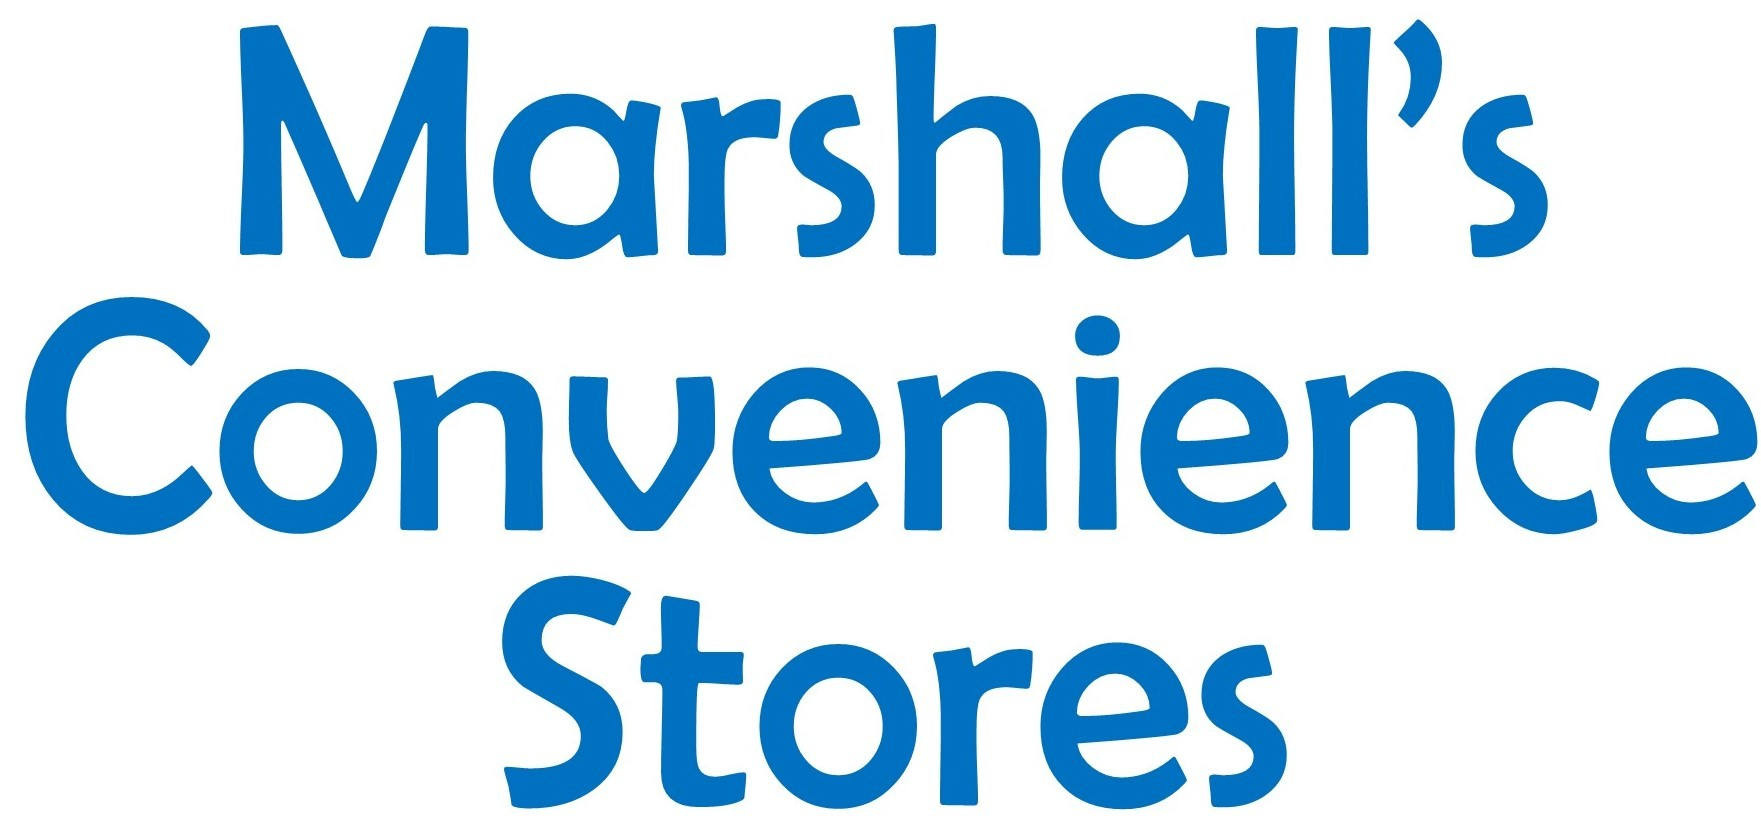 Marshall's Convenience Stores